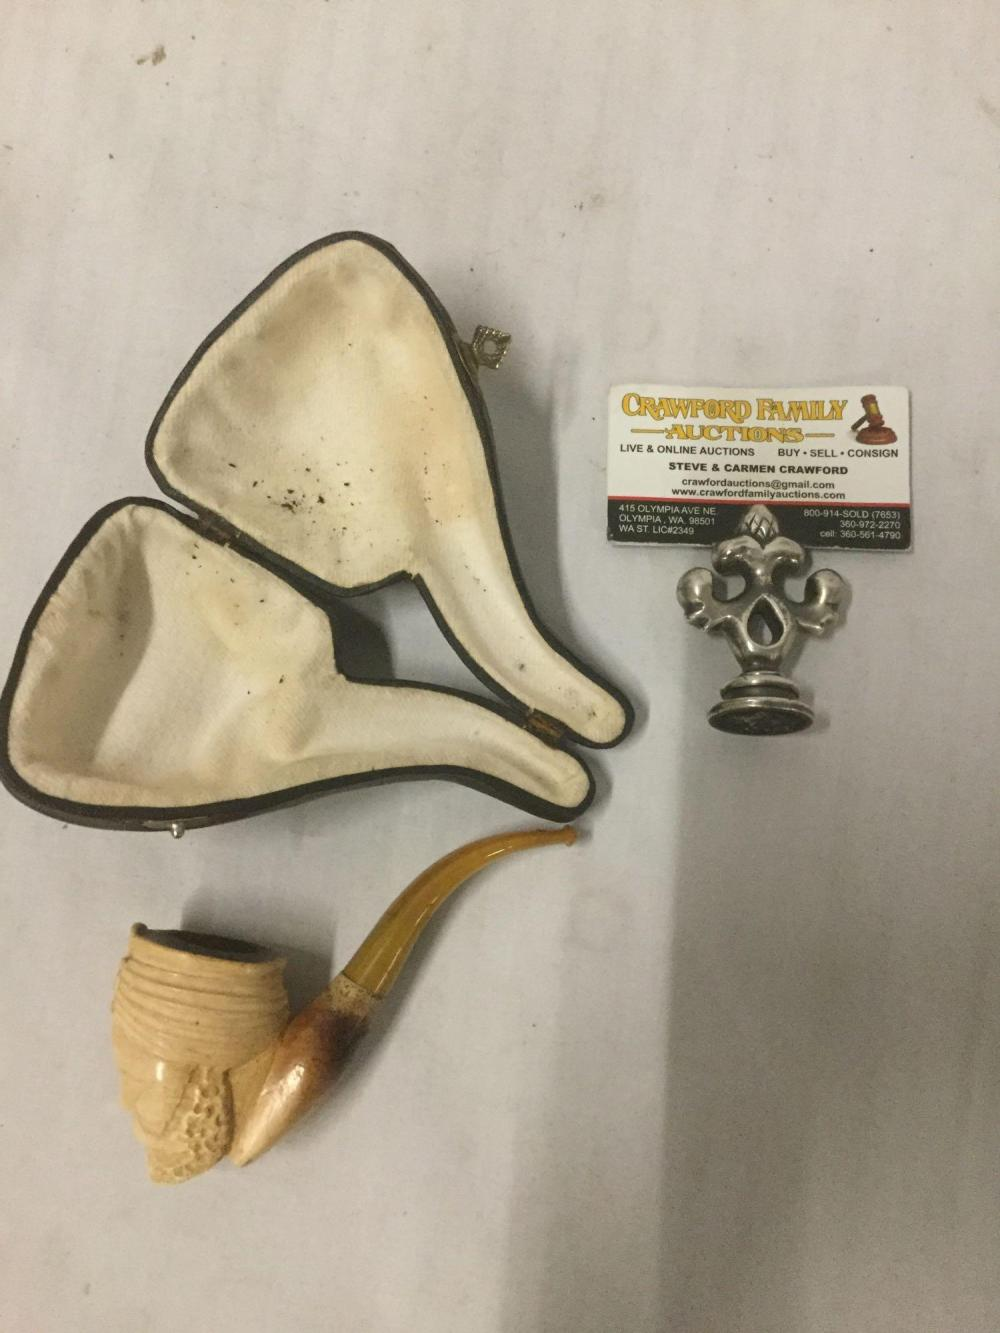 Lot 84: Ornate intricate vintage Meerschaum pipe with design of mans face in case